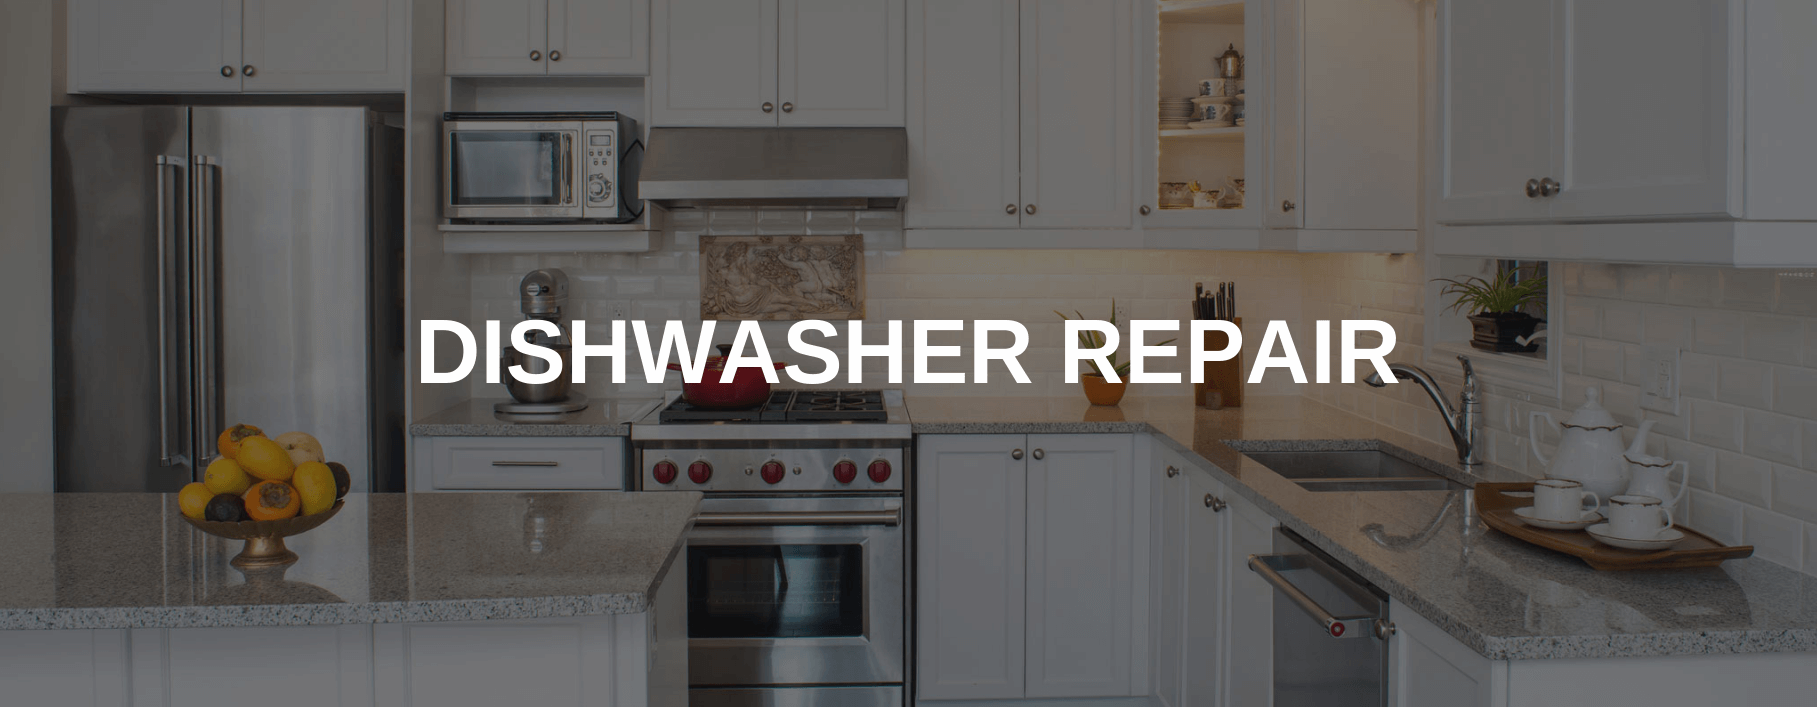 dishwasher repair riverside